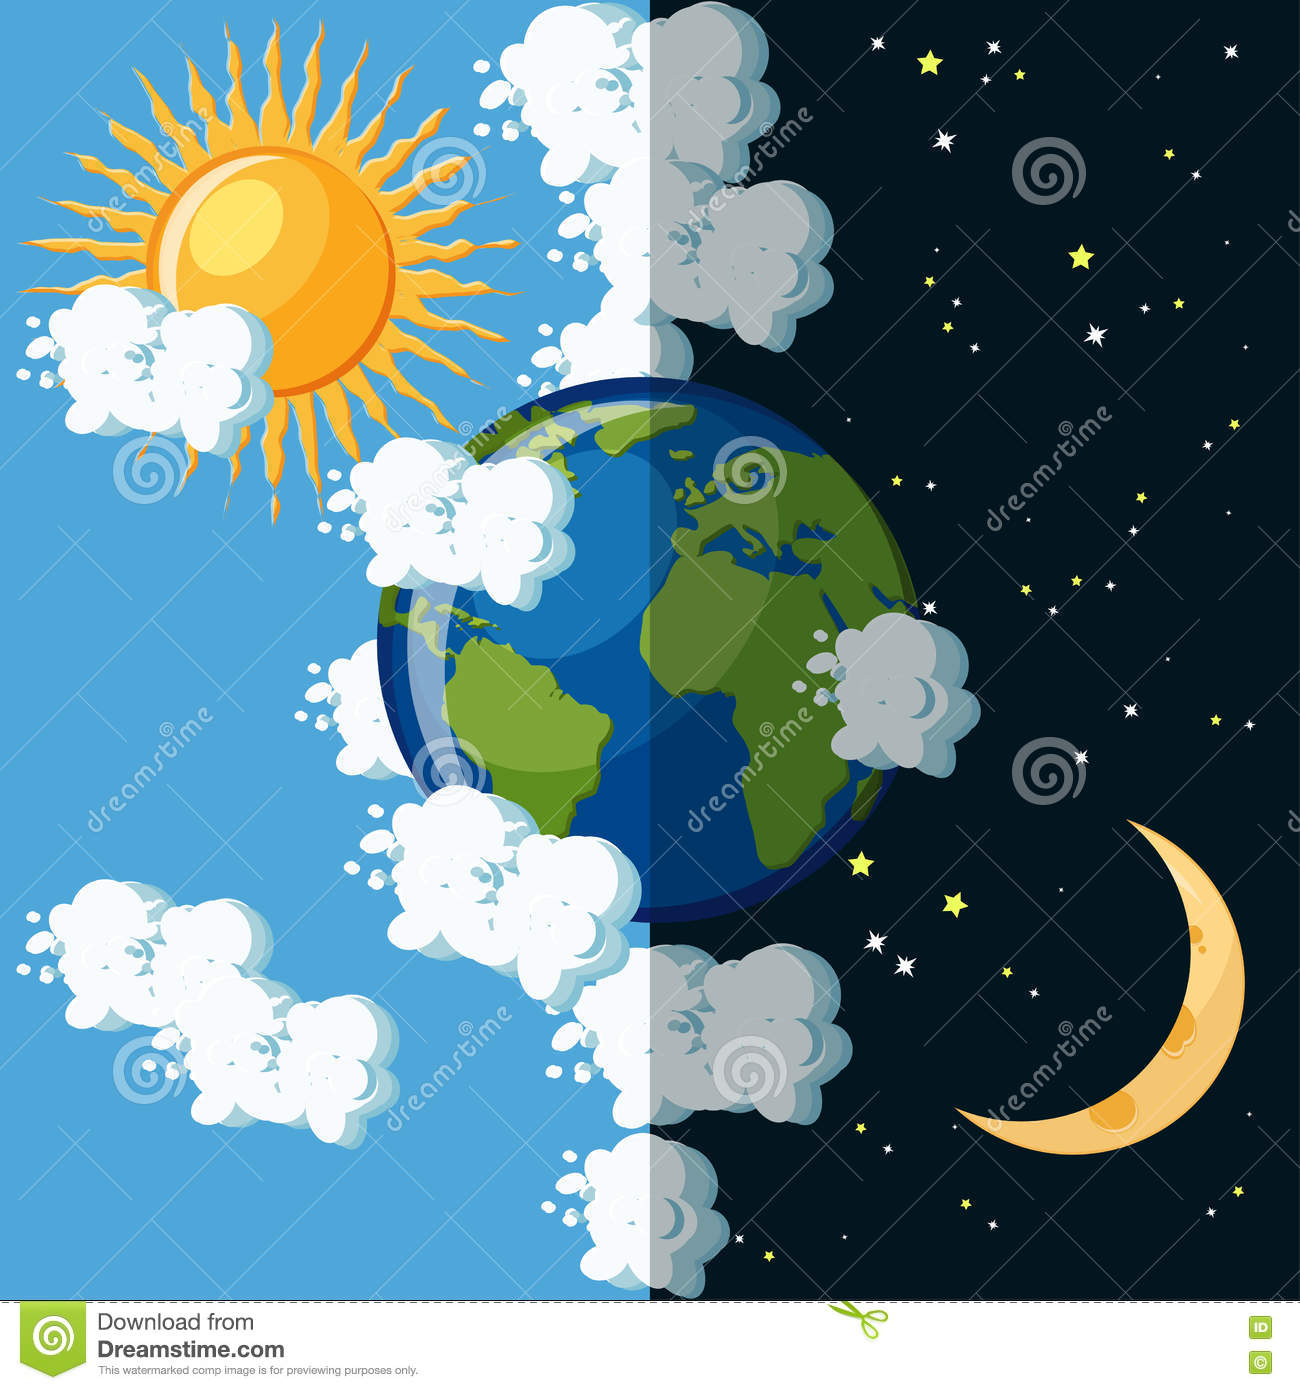 Day And Night On The Planet Earth Concept Stock Vector